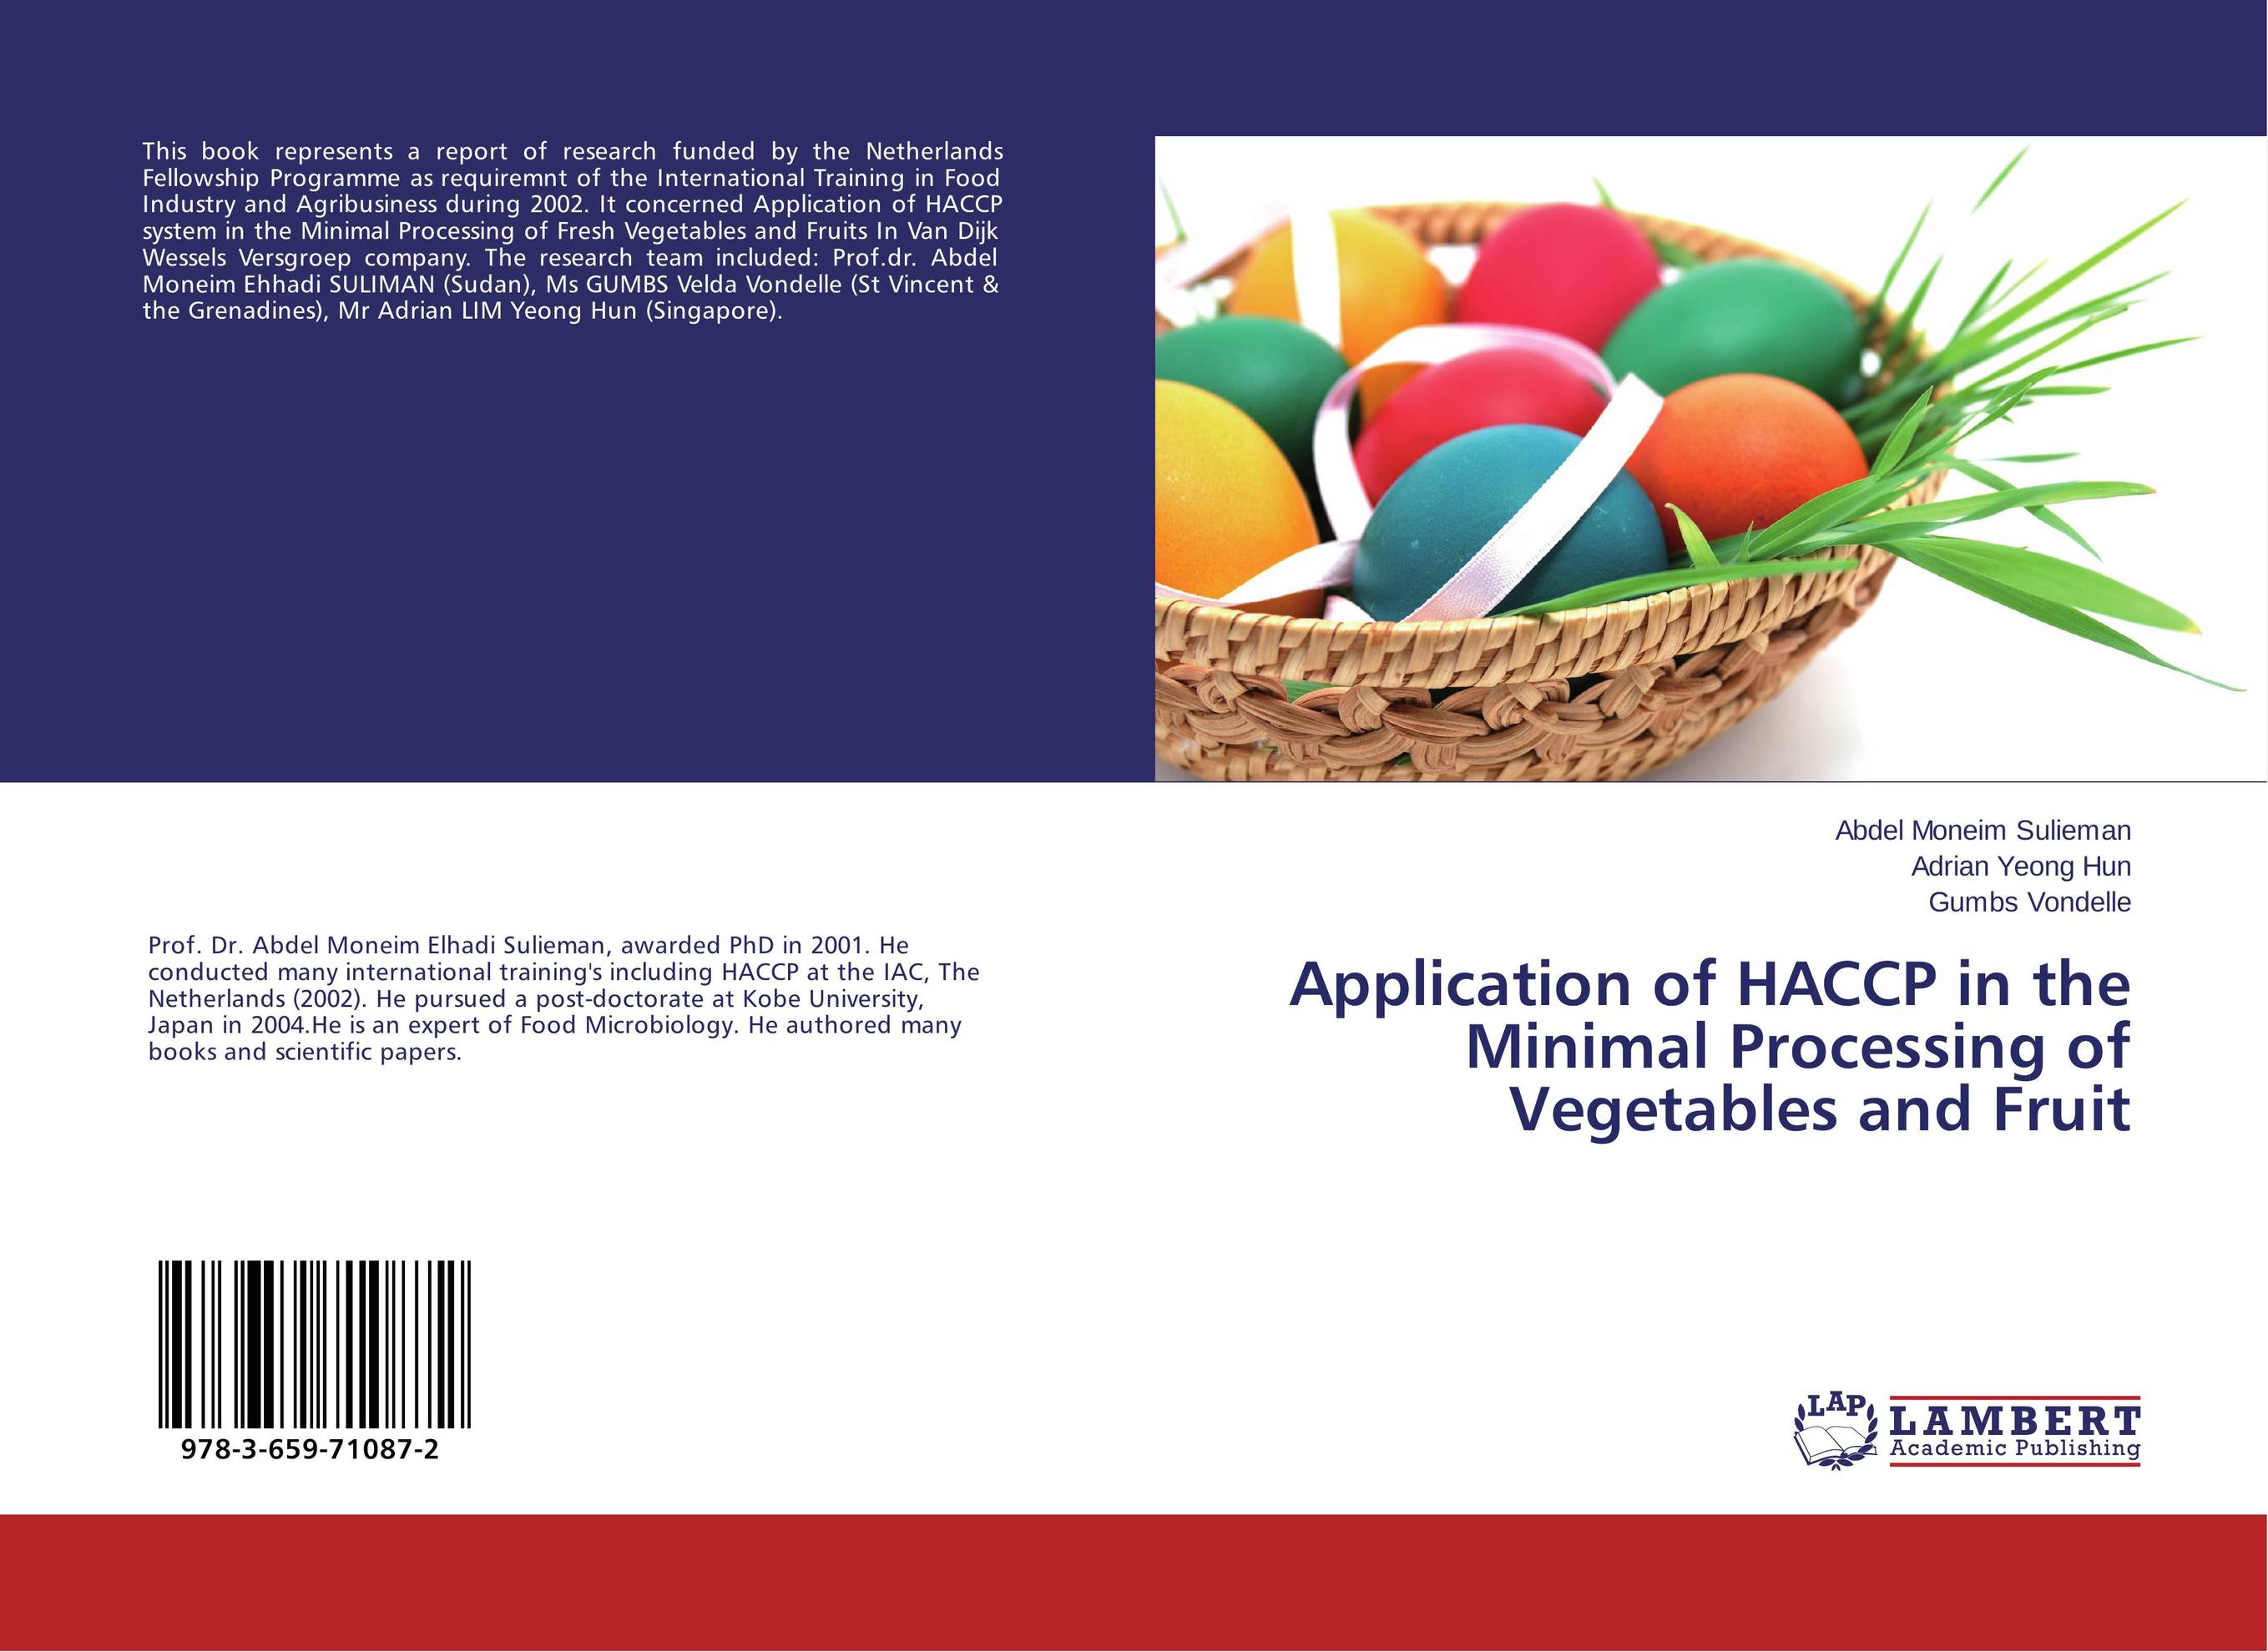 Application of HACCP in the Minimal Processing of Vegetables and Fruit bernard s schweigert microwaves in the food processing industry